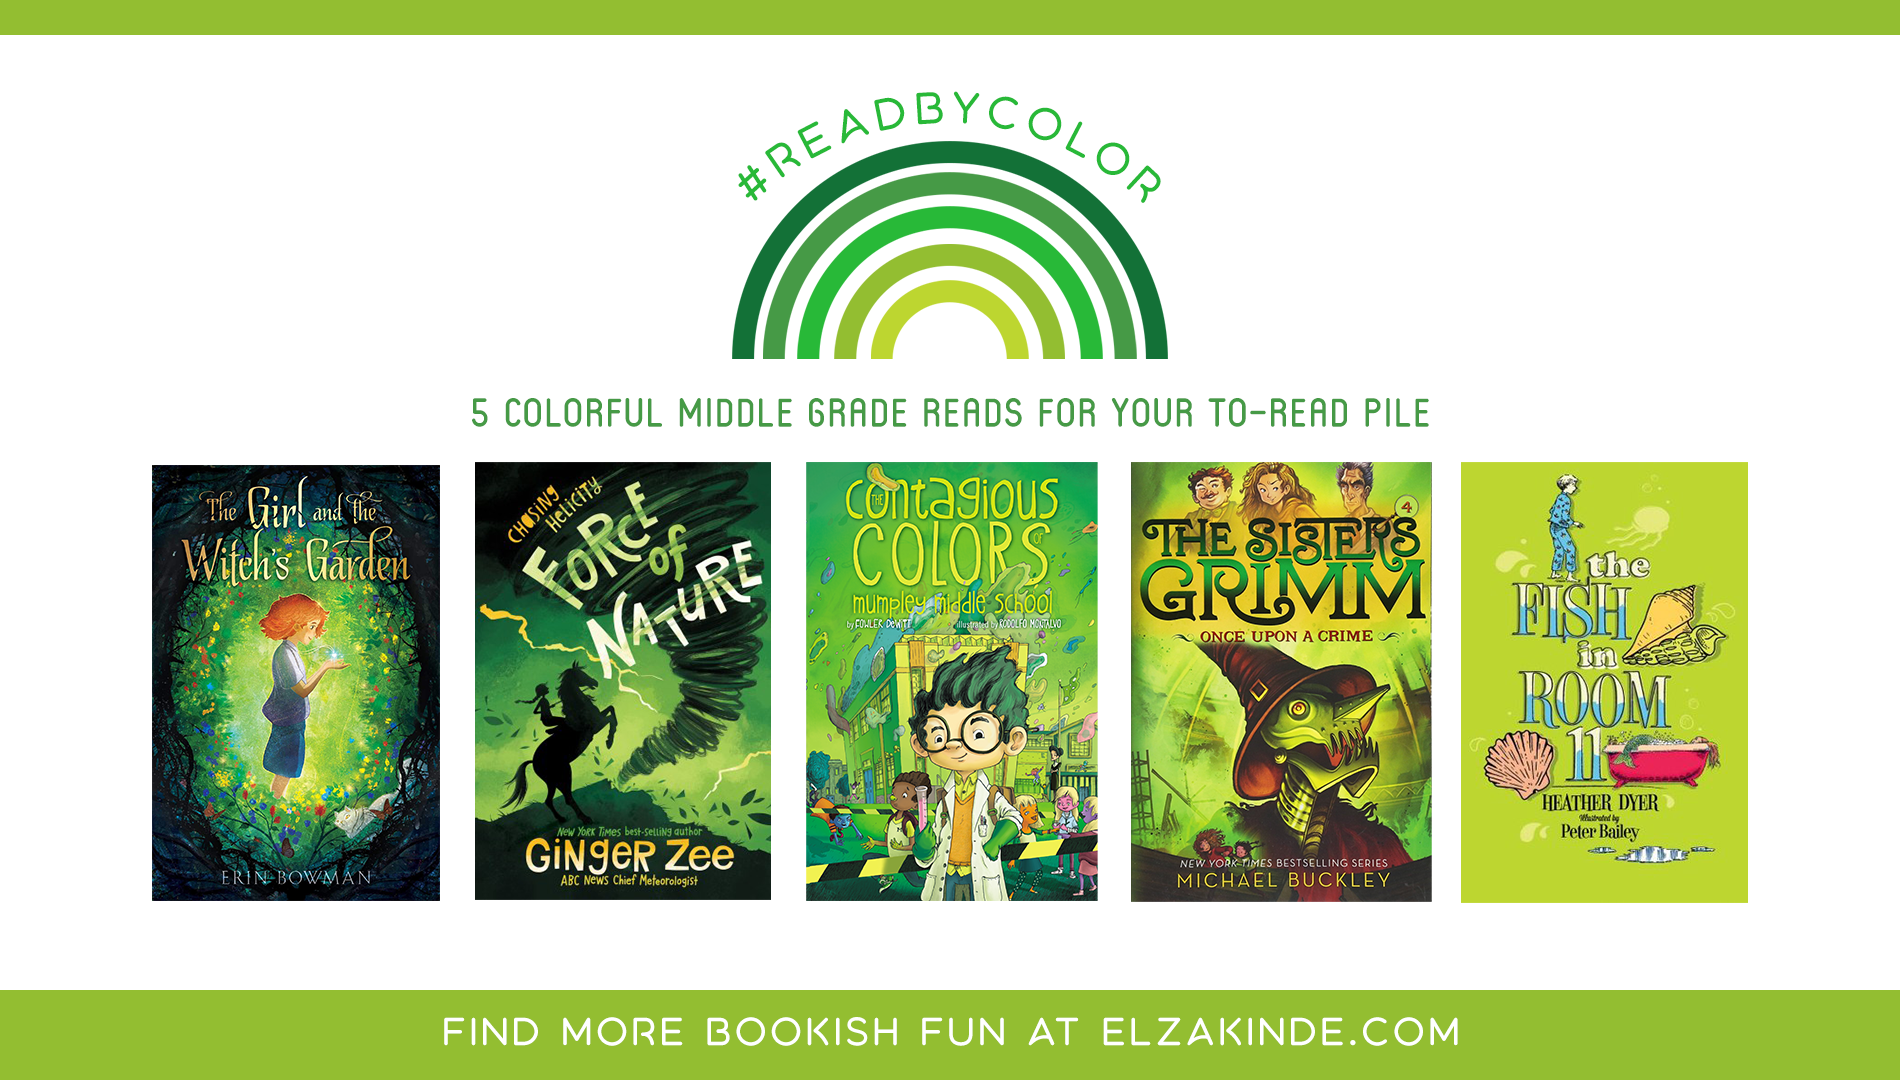 #ReadByColor: 5 Colorful Middle Grade Reads for Your To-Read Pile | features the book covers of THE GIRL AND THE WITCH'S GARDEN by Erin Bowman; CHASING HELICITY: FORCE OF NATURE by Ginger Zee; THE CONTAGIOUS COLORS OF MUMPLEY MIDDLE SCHOOL by Fowler DeWitt; ONCE UPON A CRIME by Michael Buckley; and THE FISH IN ROOM 11 by Heather Dyer